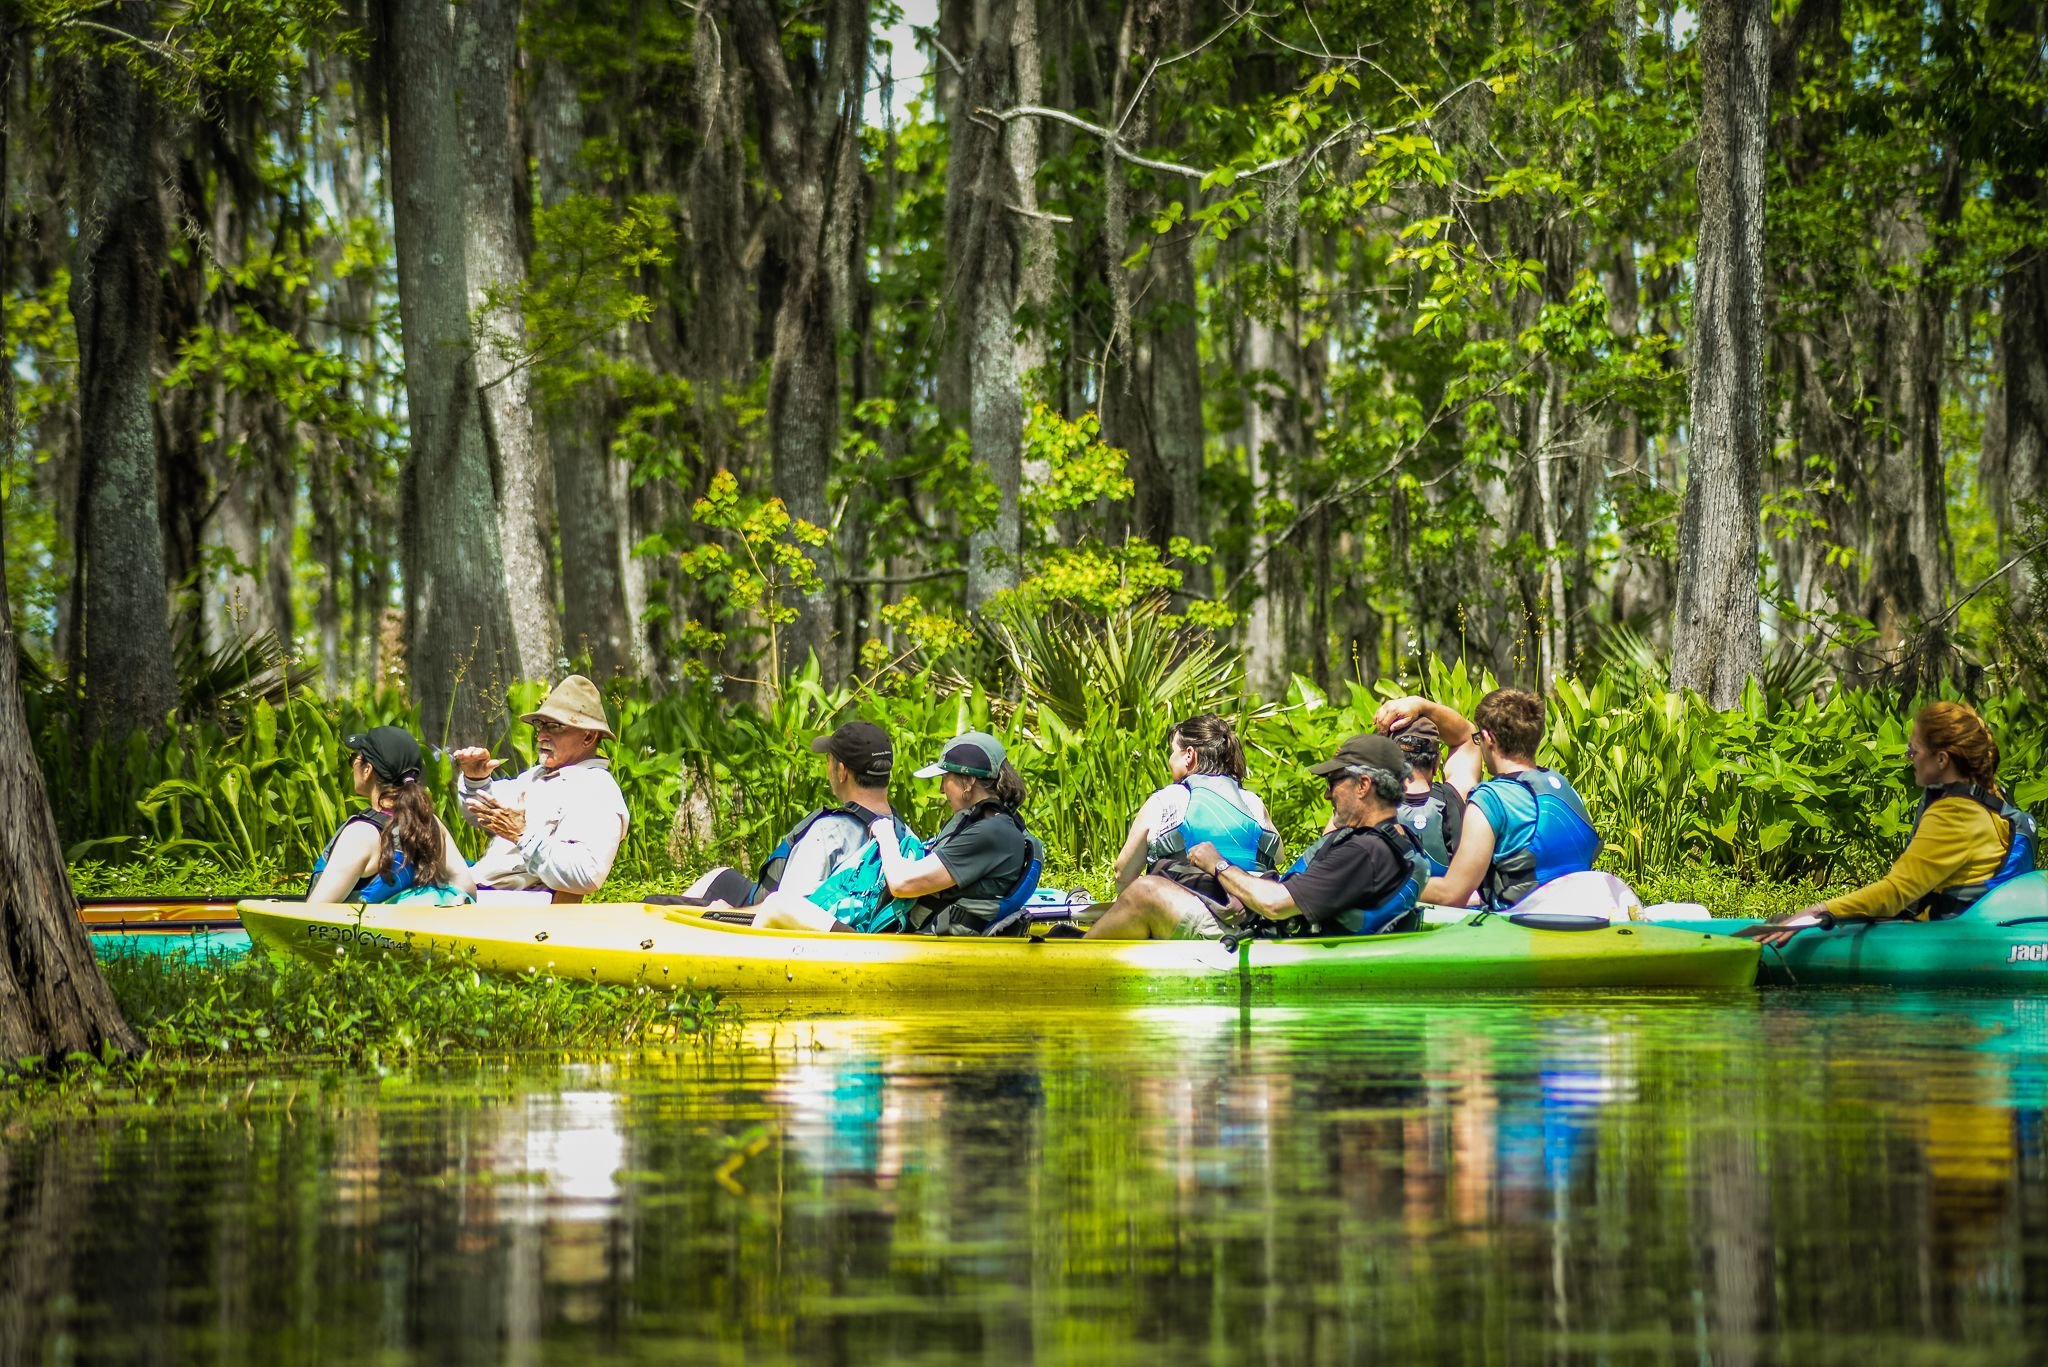 New Orleans group kayaking tour through a swamp